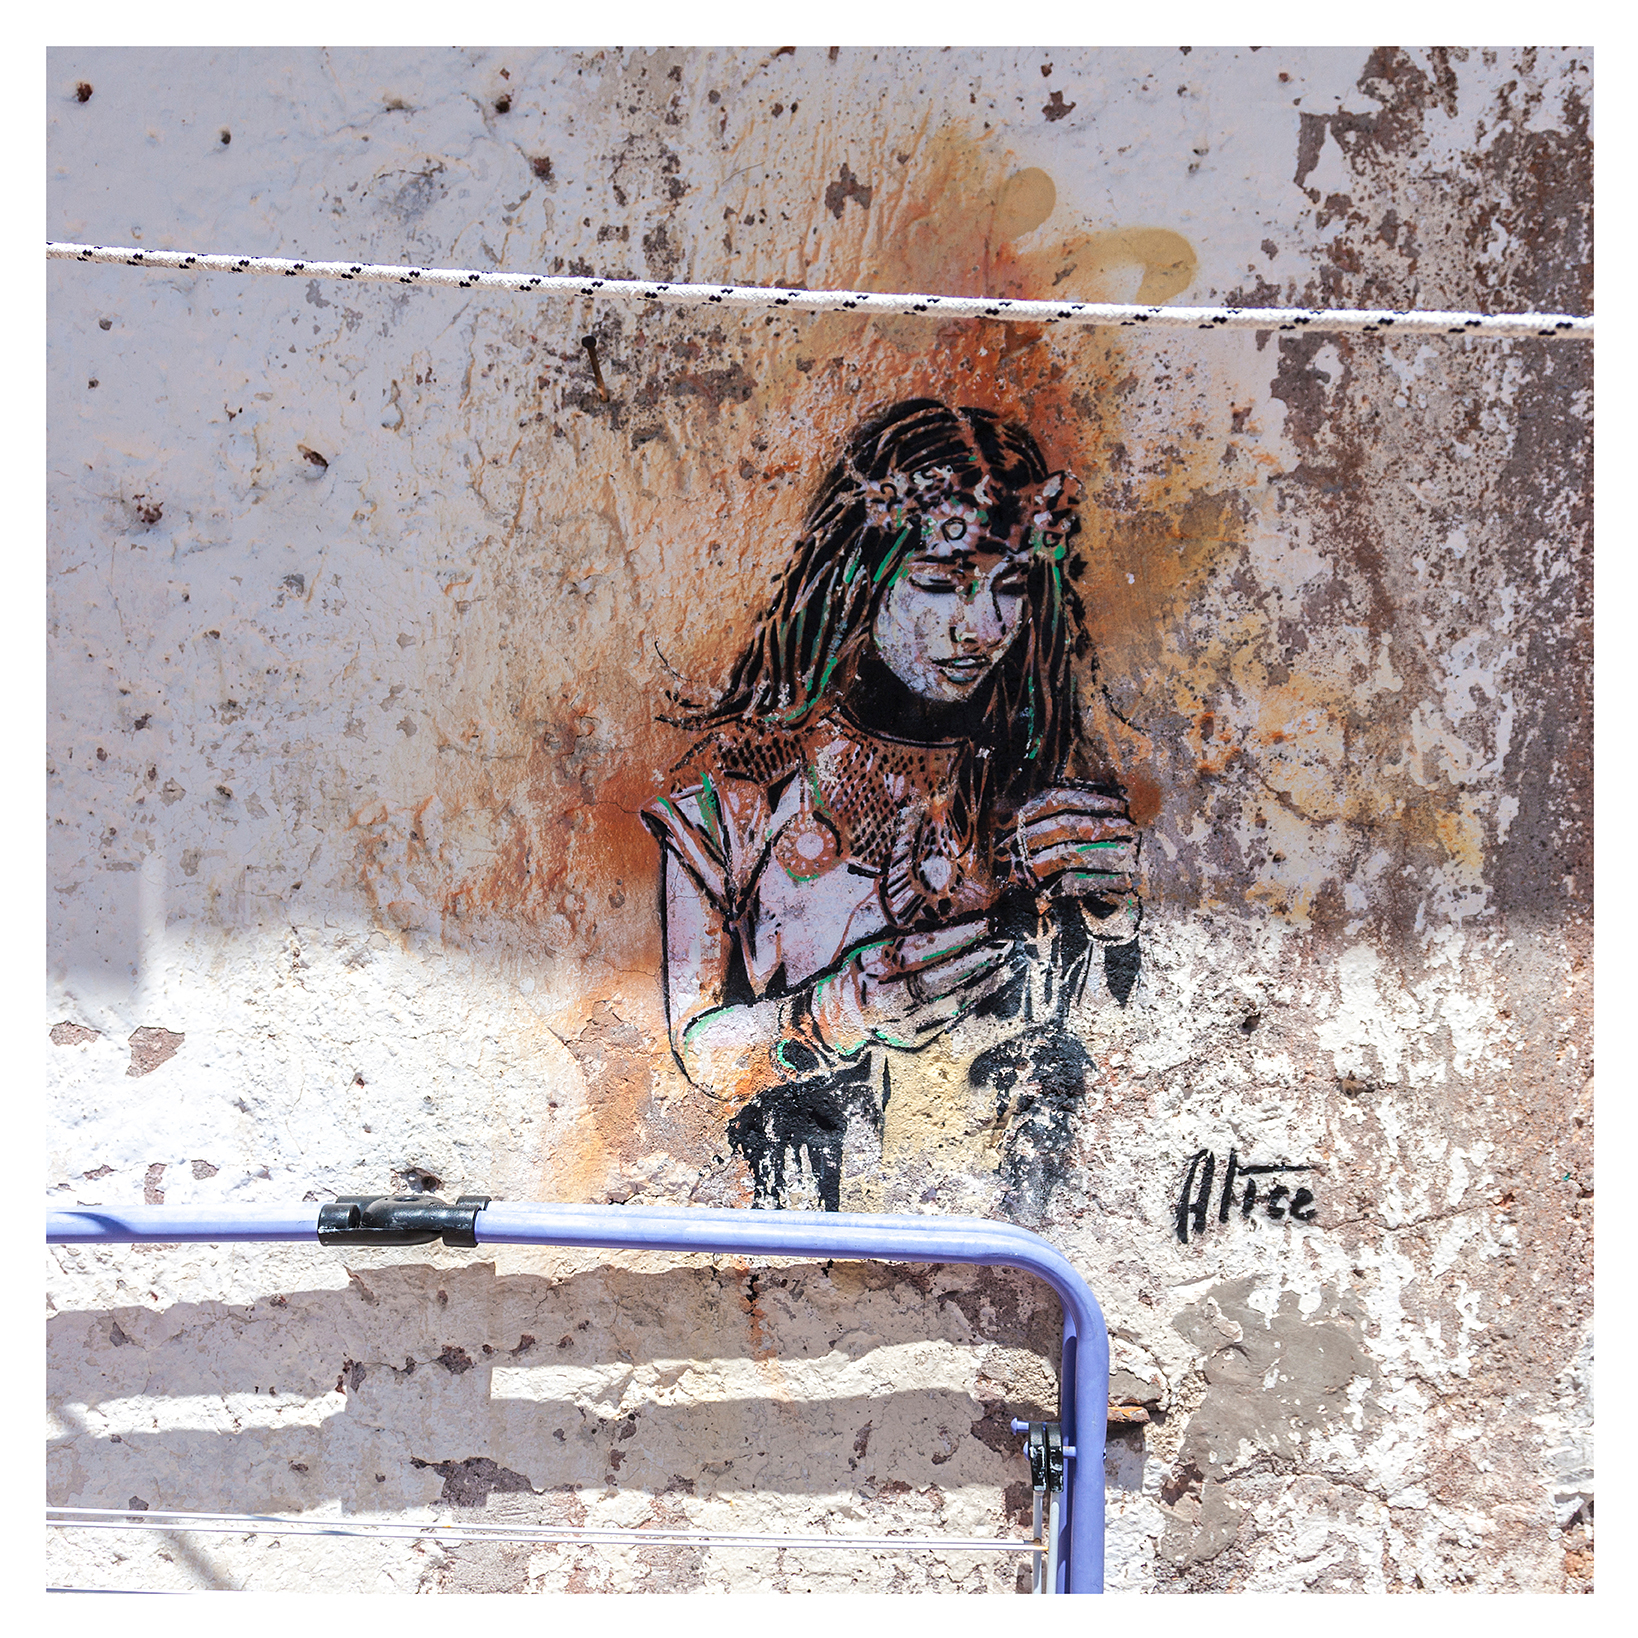 Stencil work in Rome by street artist Alice Pasquini